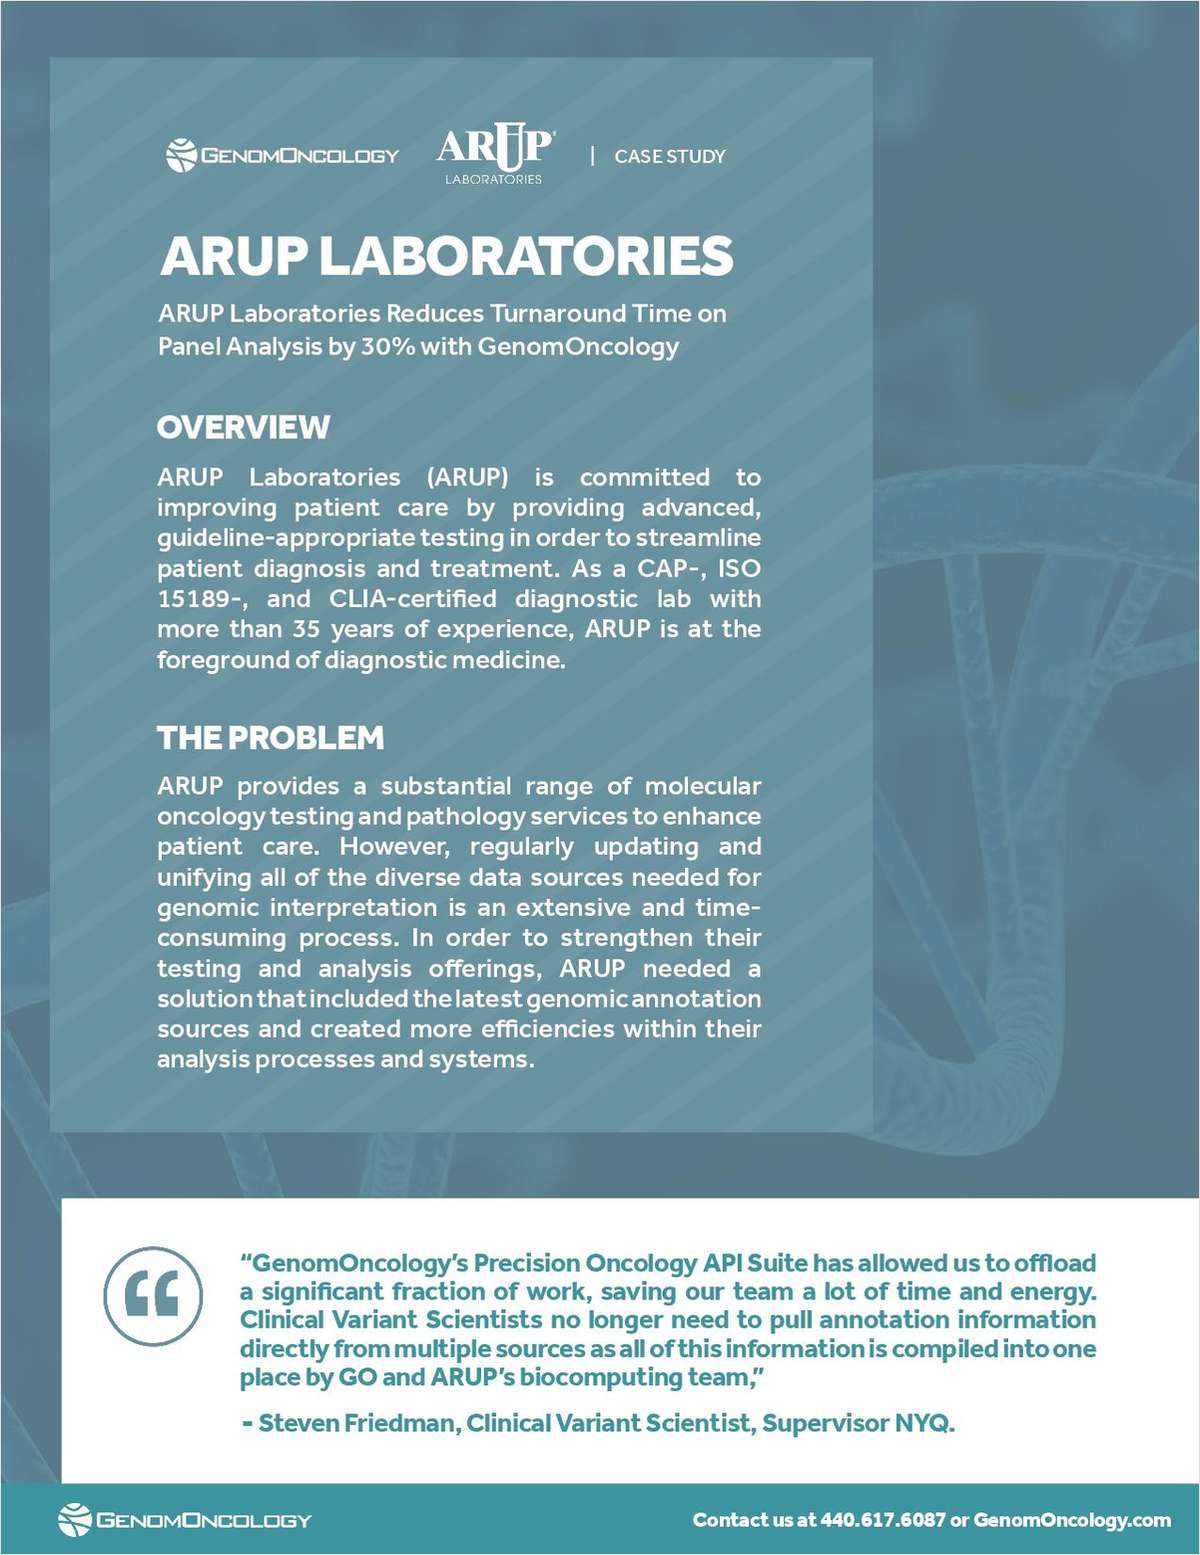 ARUP Laboratories Reduces Turnaround Time on Panel Analysis by 30 Percent with GenomOncology